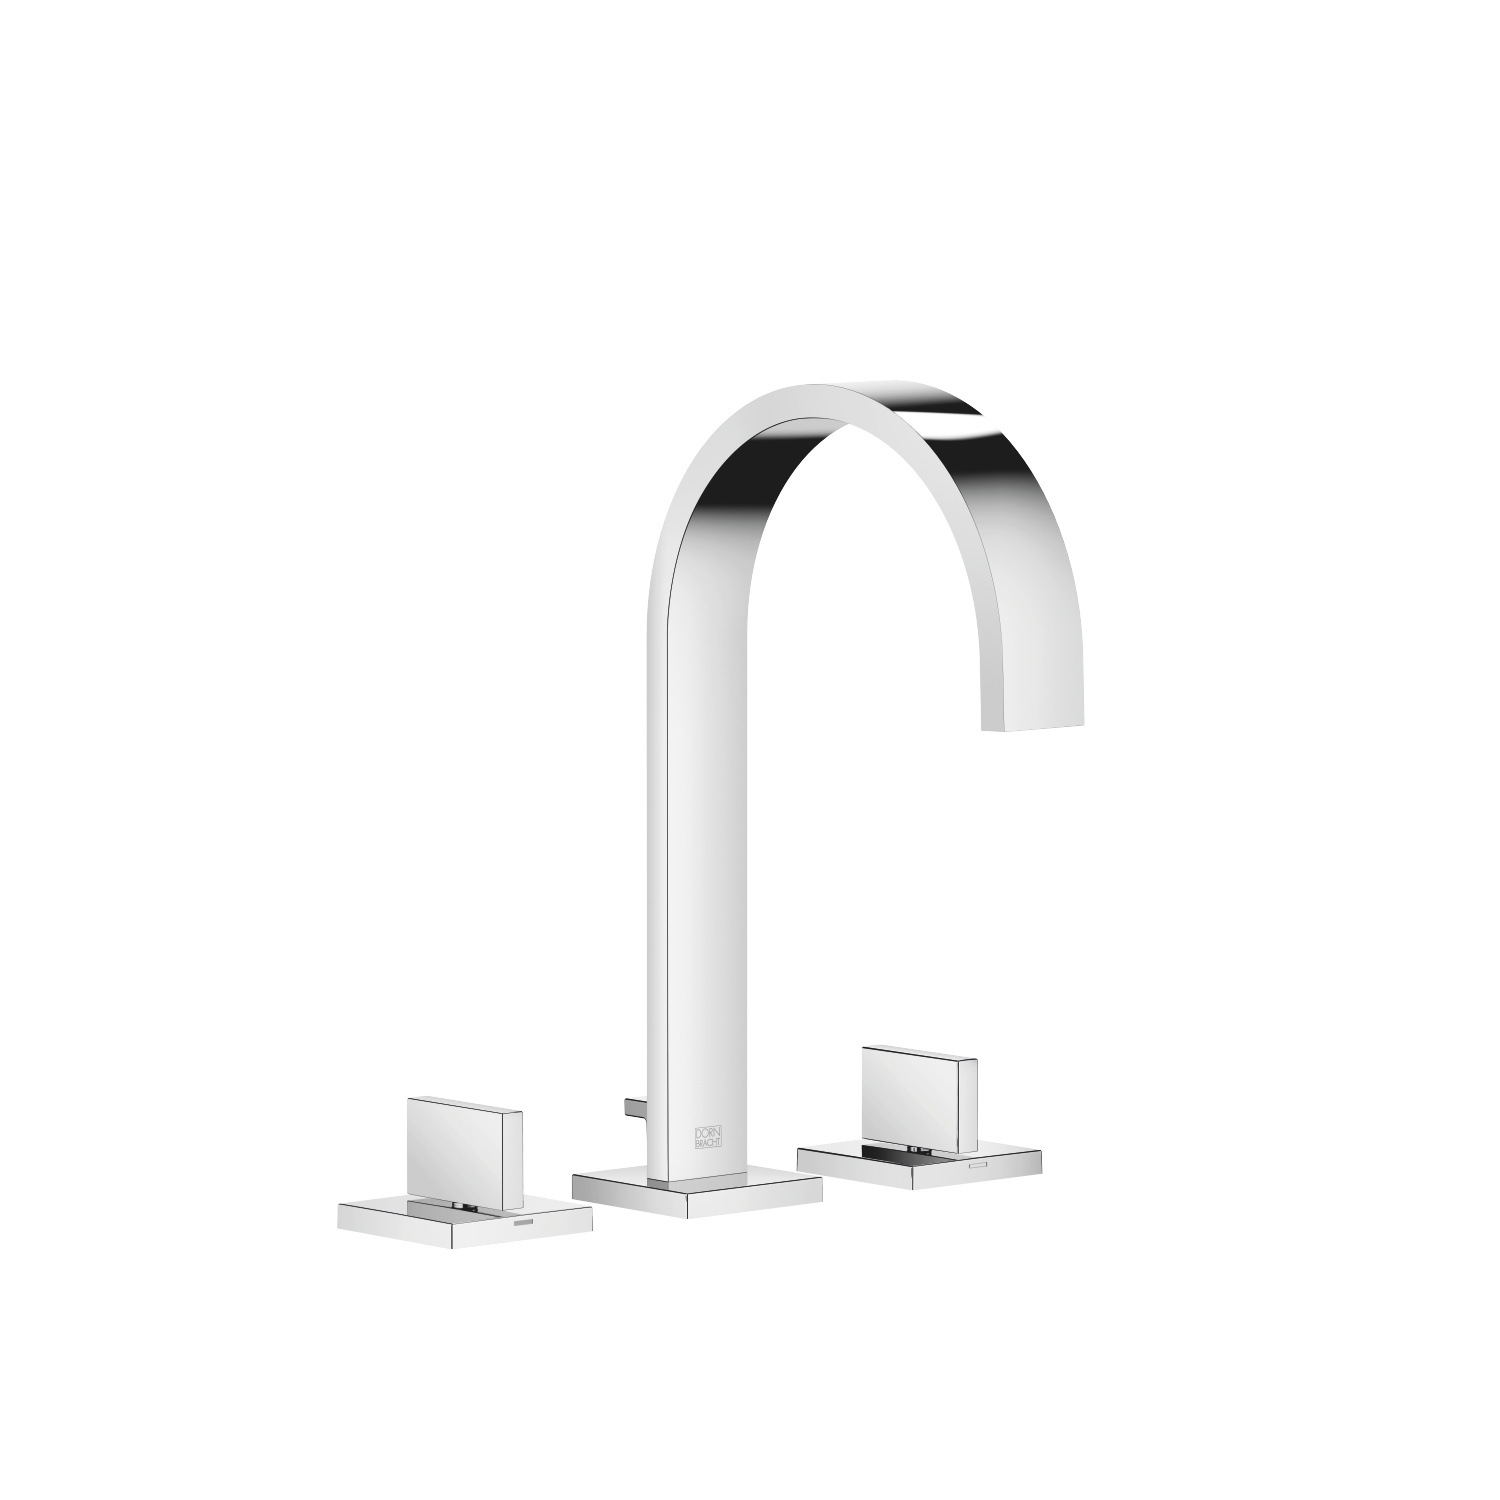 Three-hole basin mixer with pop-up waste - polished chrome - 20 713 782-00